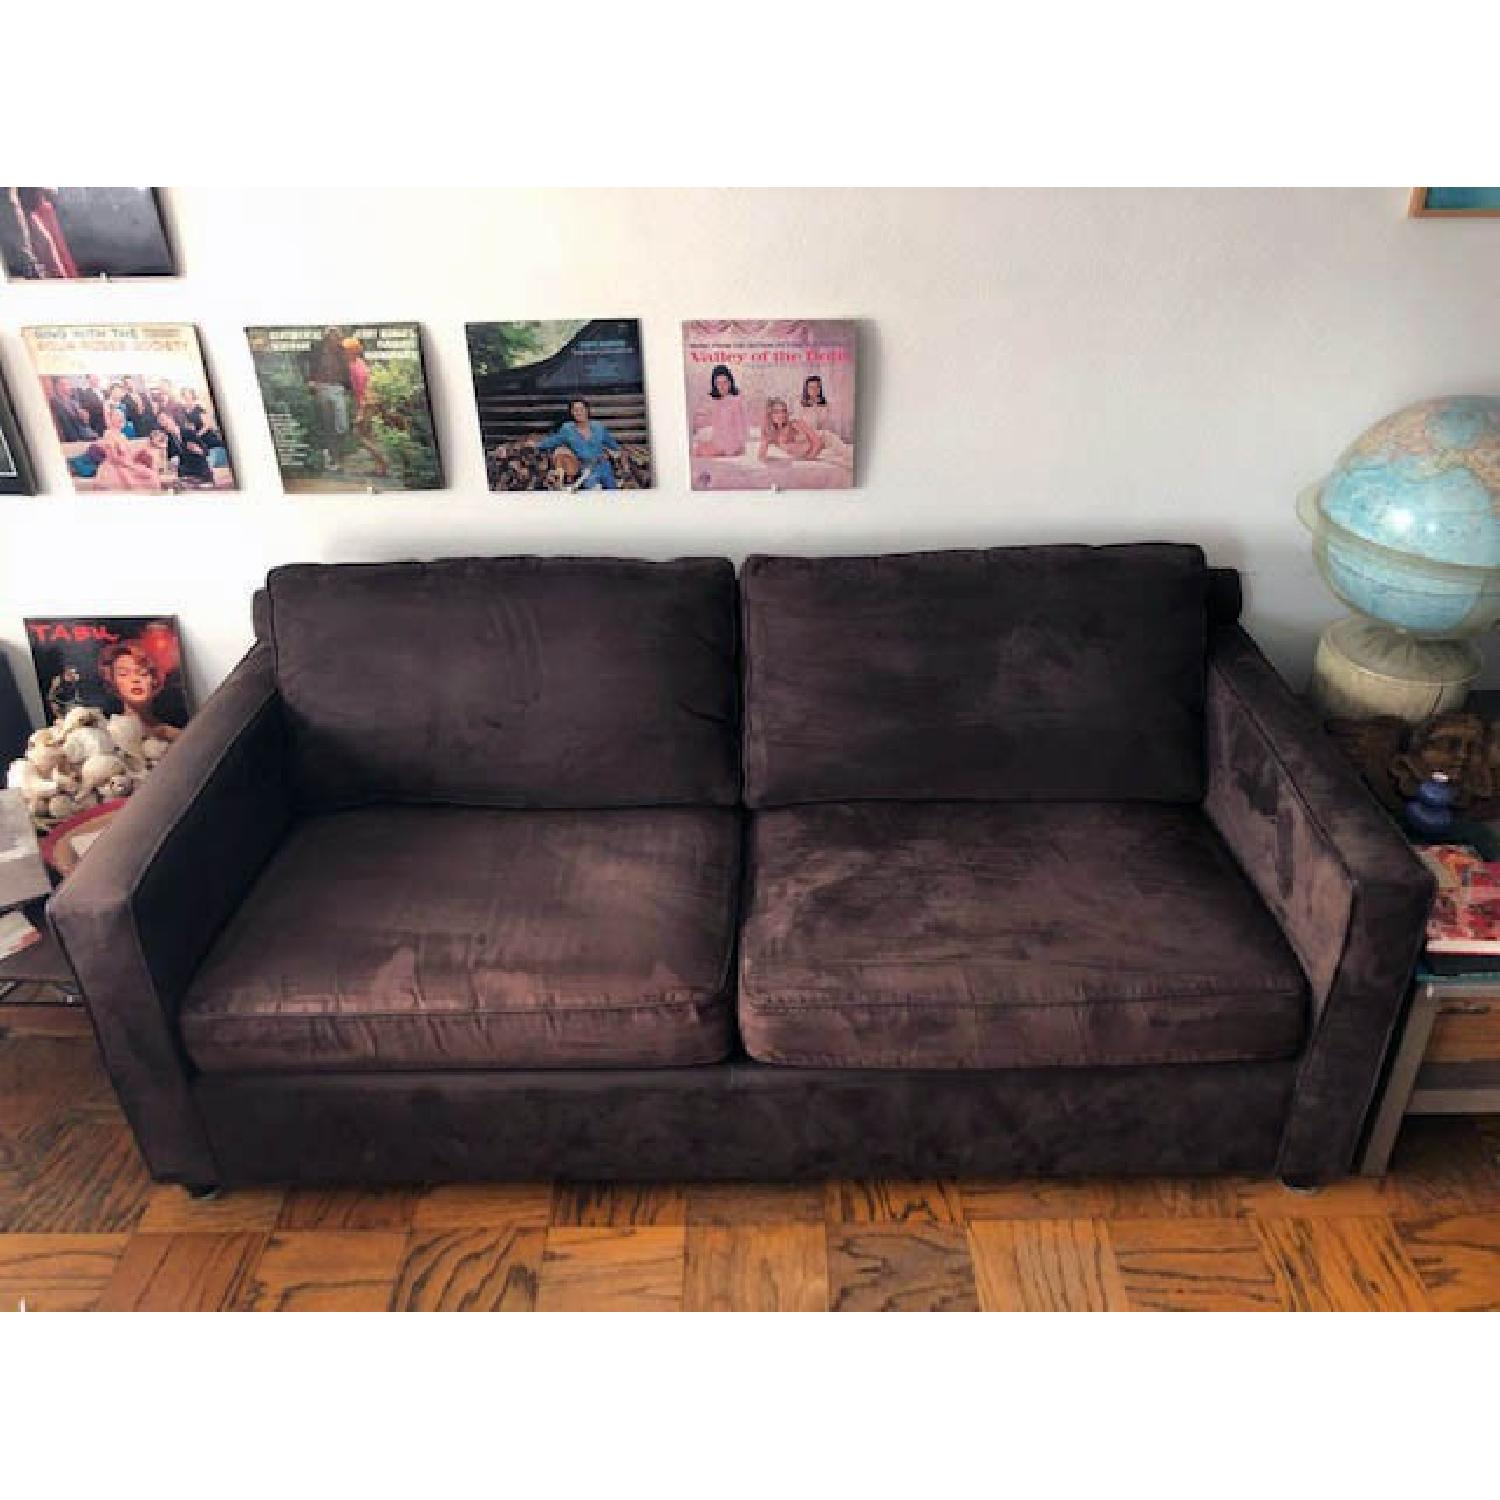 Crate & Barrel Barrett Sofa & Matching Armchair - image-1